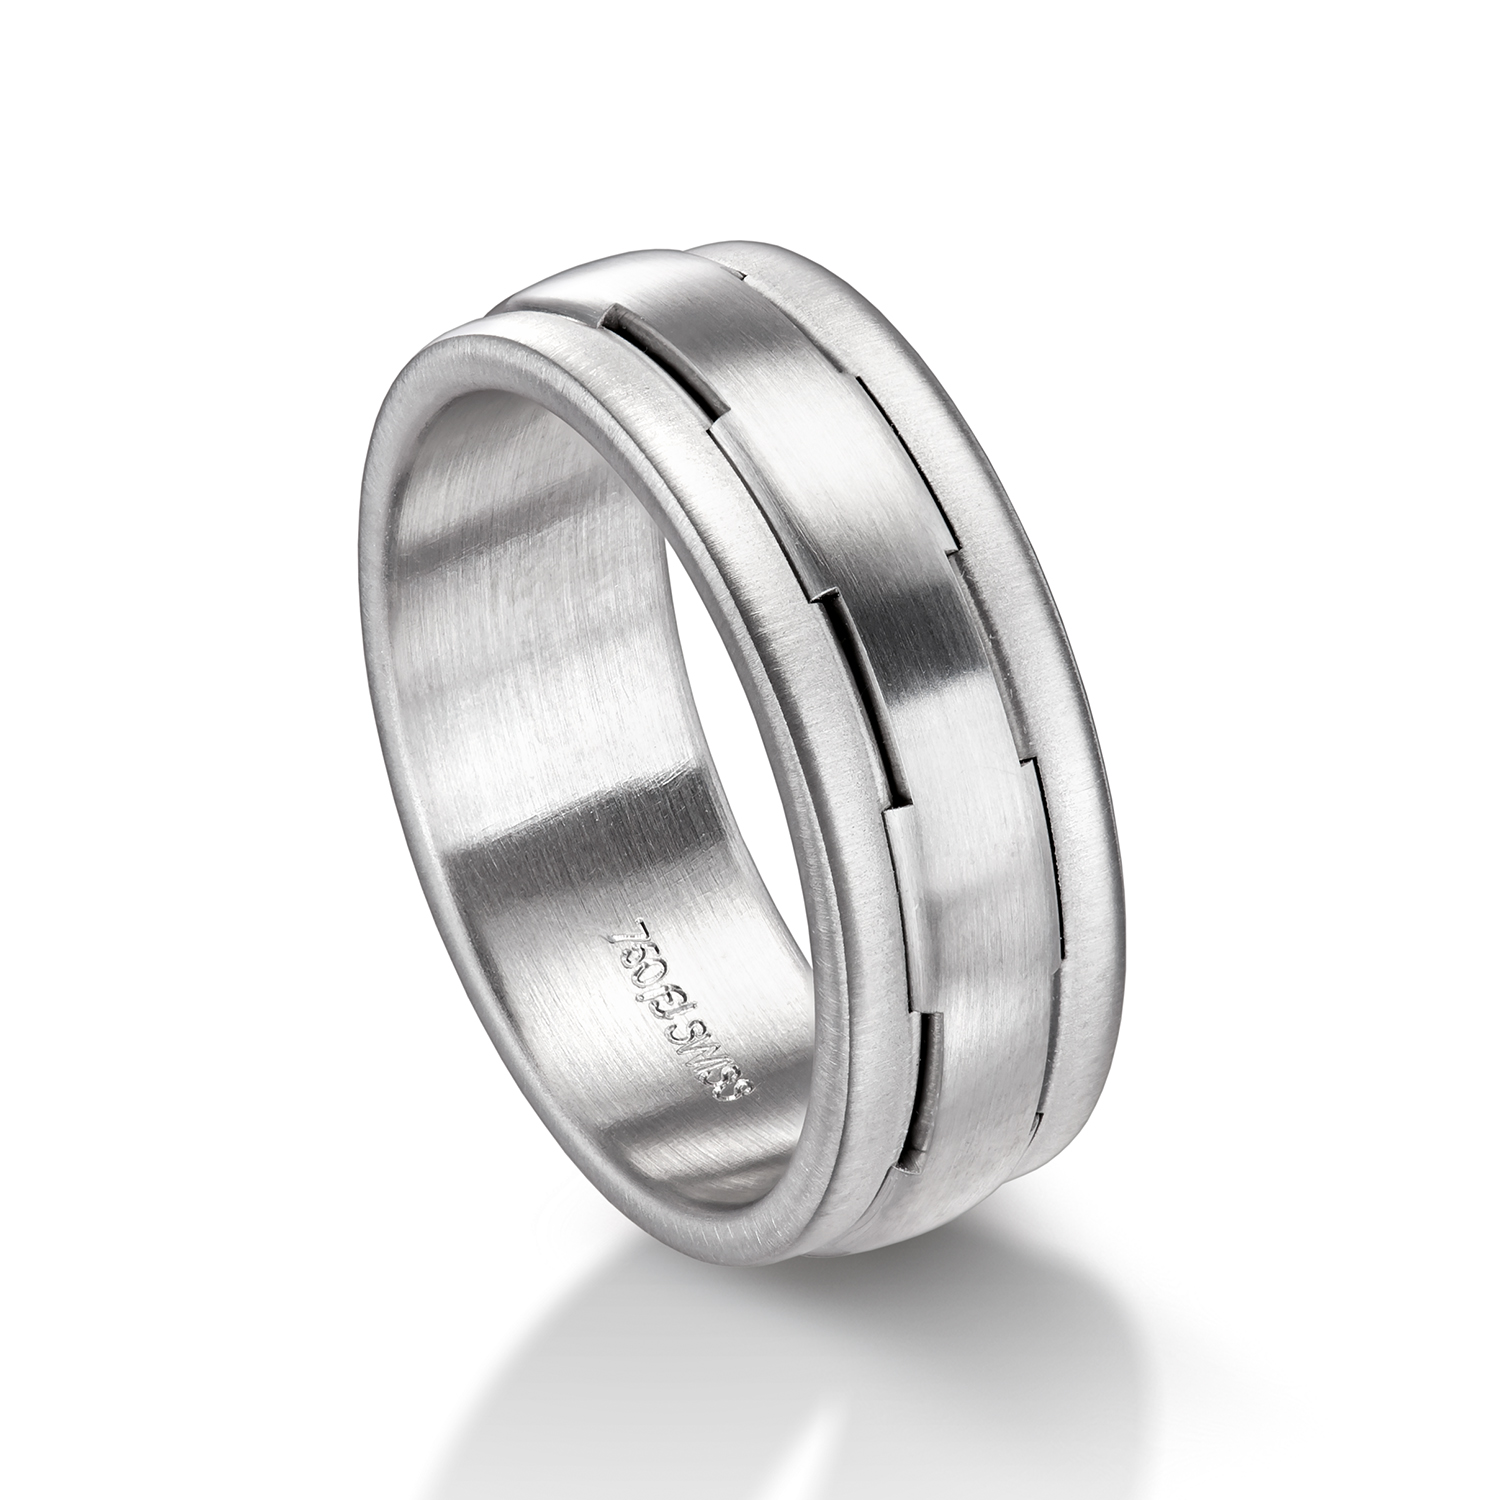 Man's world wedding rings in white gold